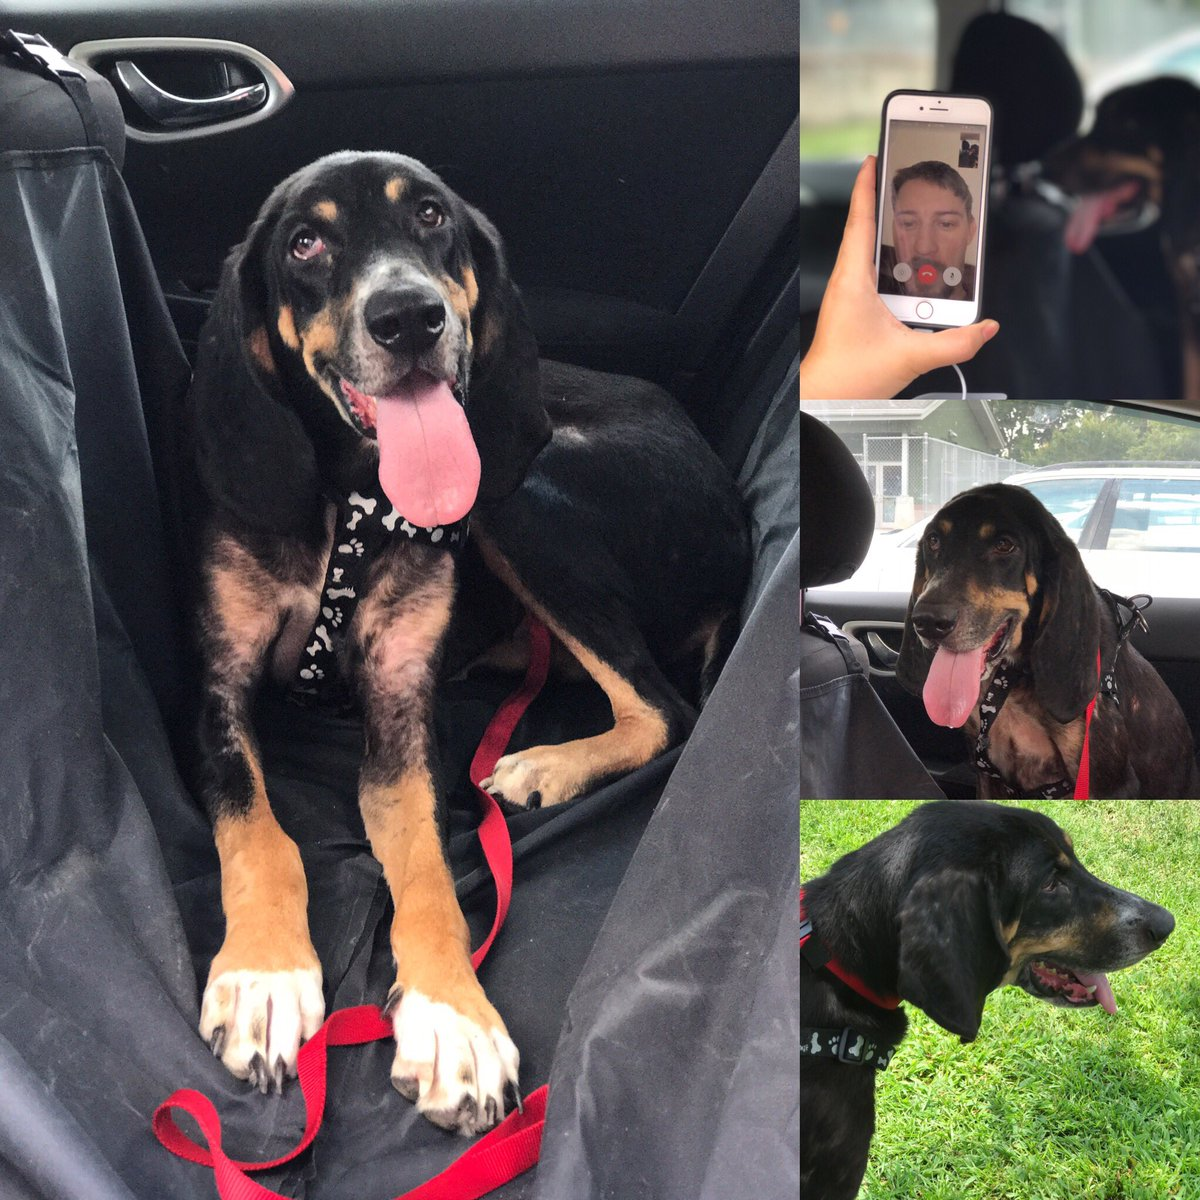 Shelby, a PTSD dog was lost 3 months ago in Linden Tenn. &amp; found in #chas thanks to a microchip she will be reunited with her dad tonight! <br>http://pic.twitter.com/IllqNyYRWs